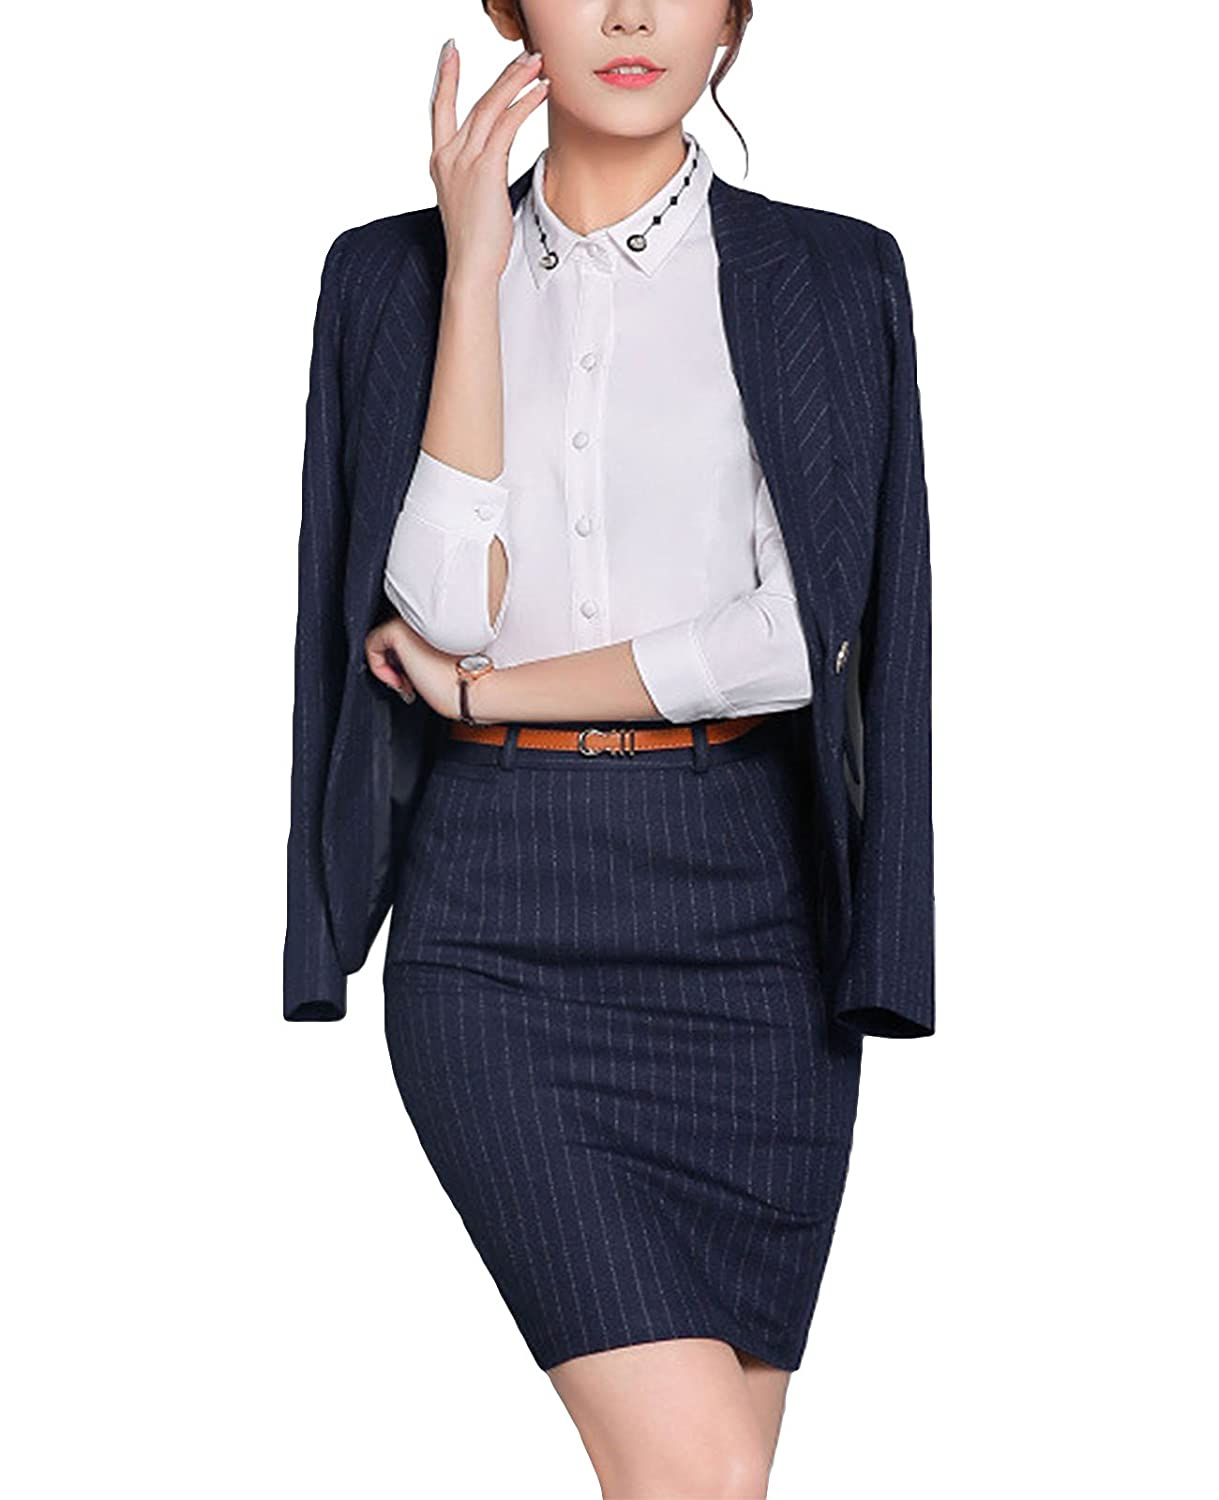 MFrannie Women Slim Fit Office Lady Stripes Work Blazer Jacket and Skirt Suit Set